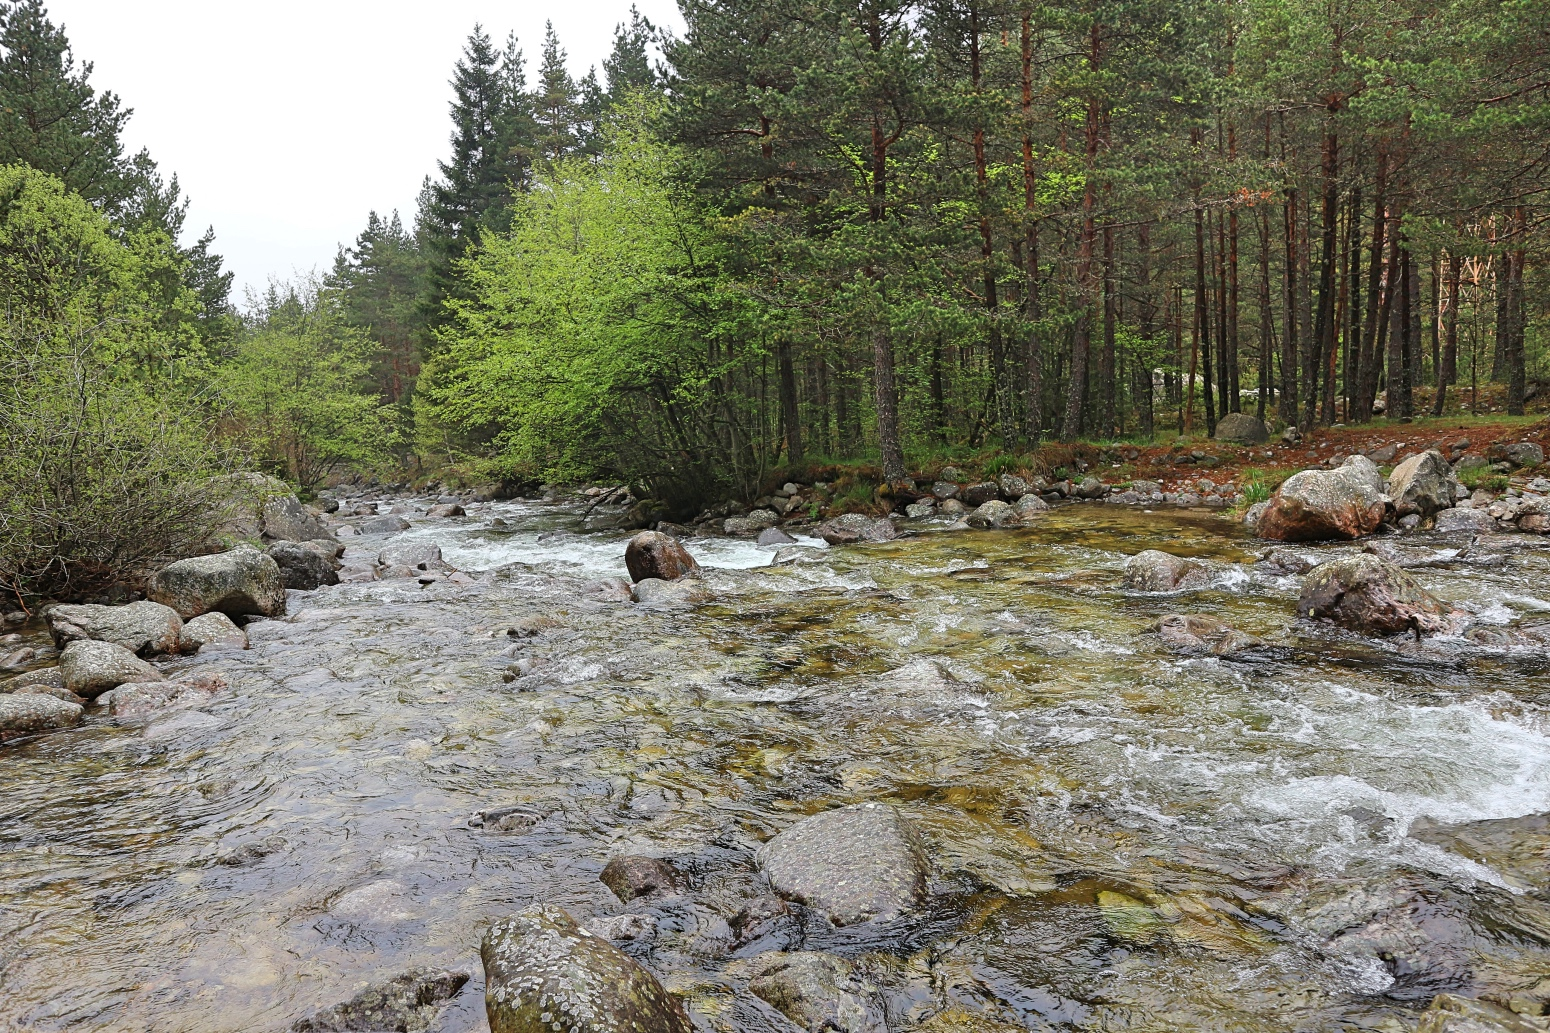 Fluss Beli Iskar im Nationalpark Rila